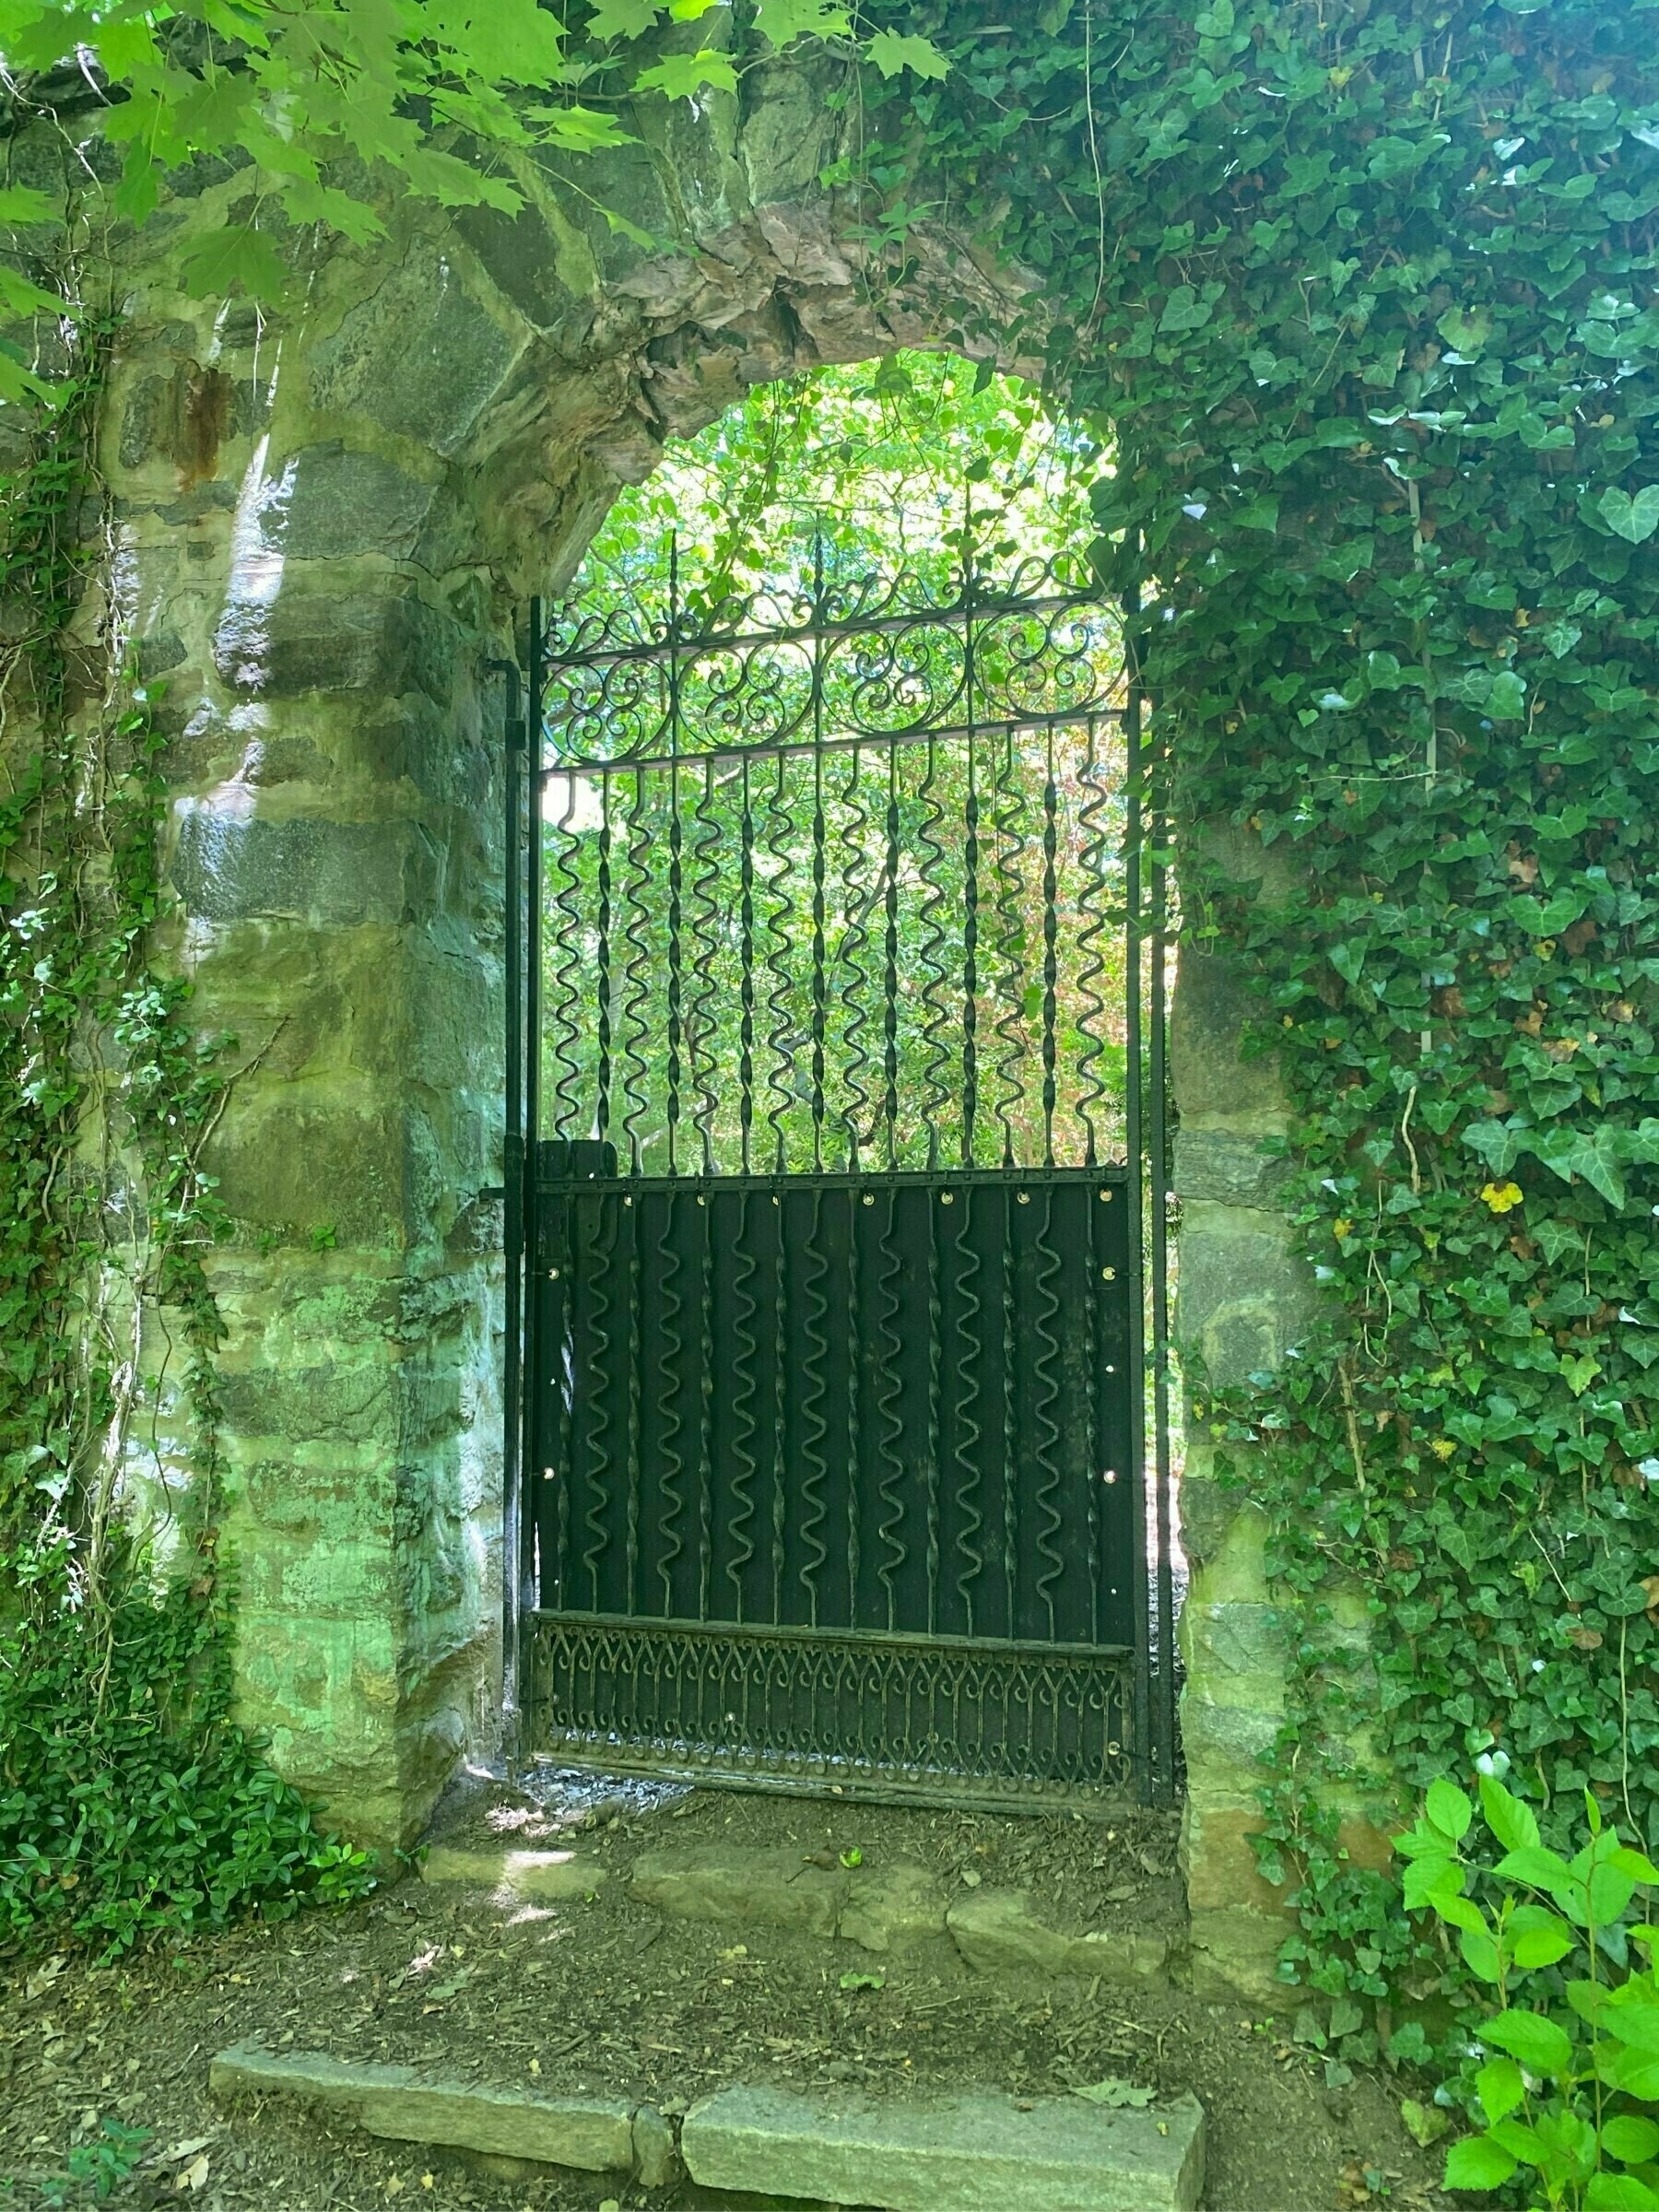 A stone archway with an iron gate surrounded by greenery